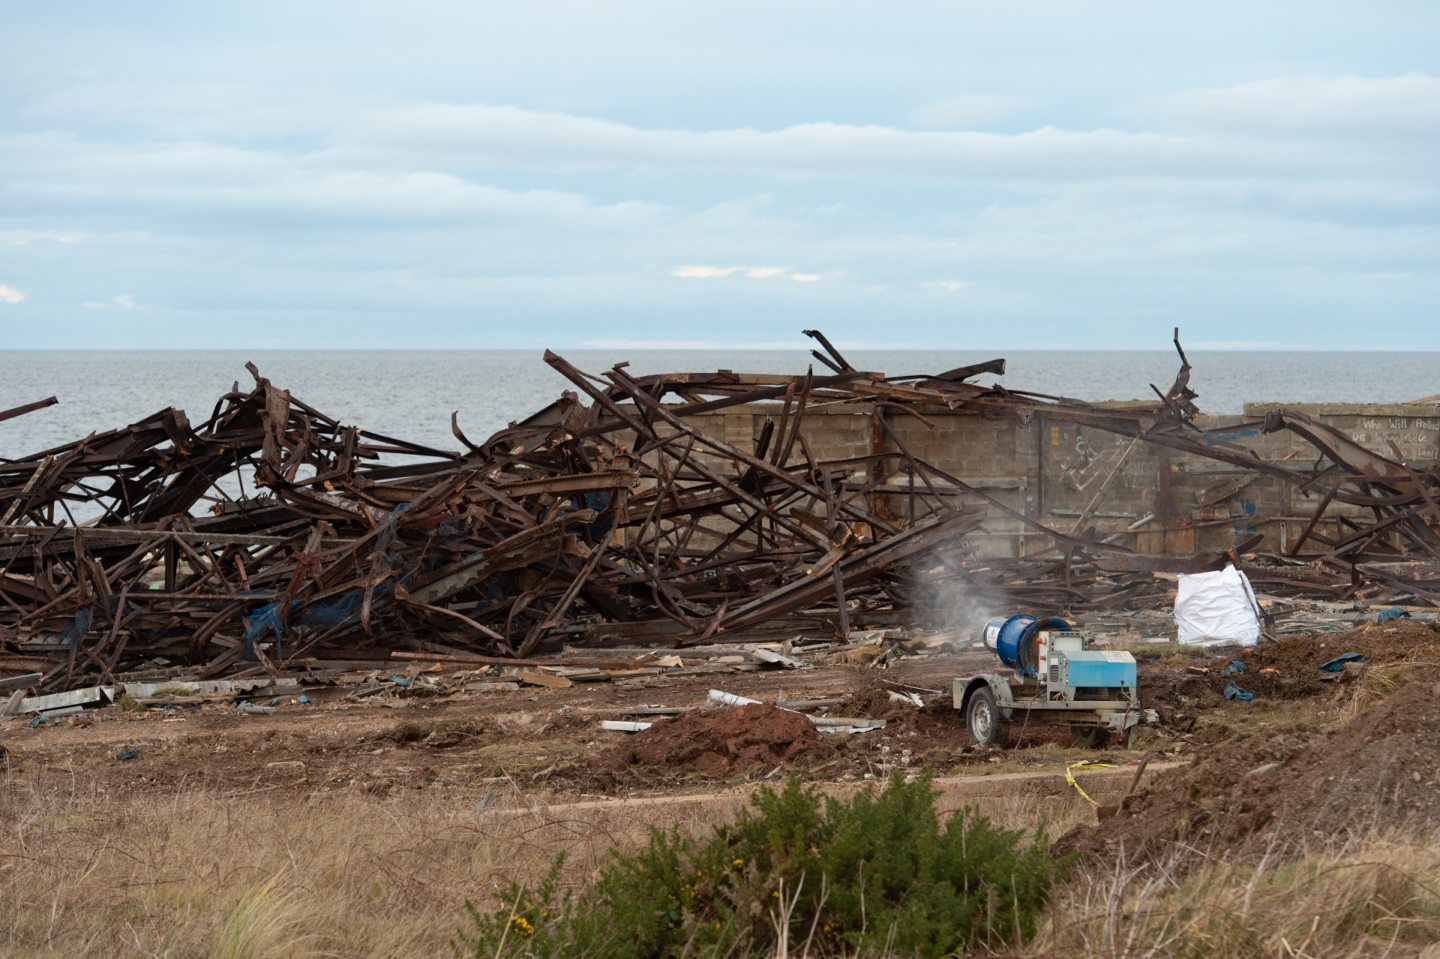 Pictures show the demolition site near Buckie Harbour, Moray. Pictures by Jason Hedges